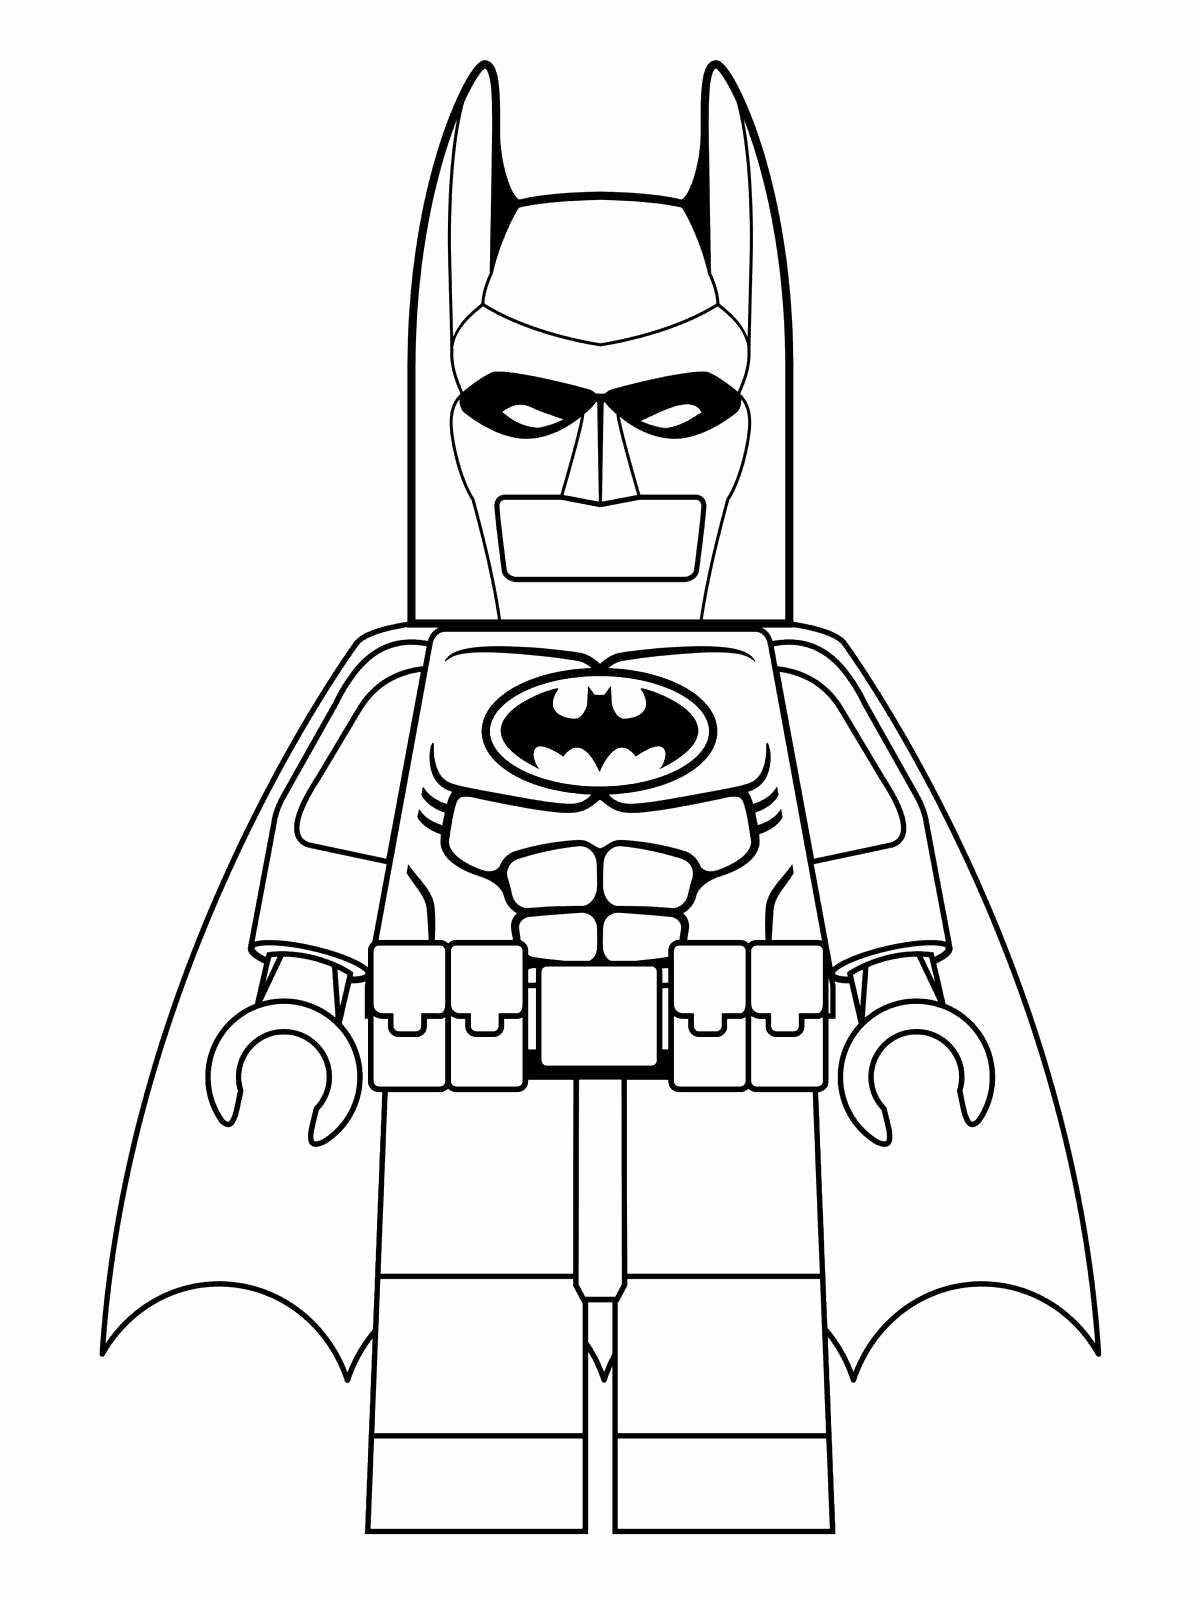 Christmas Batman Coloring Pages For Kids Lego Movie Coloring Pages Lego Coloring Pages Superhero Coloring